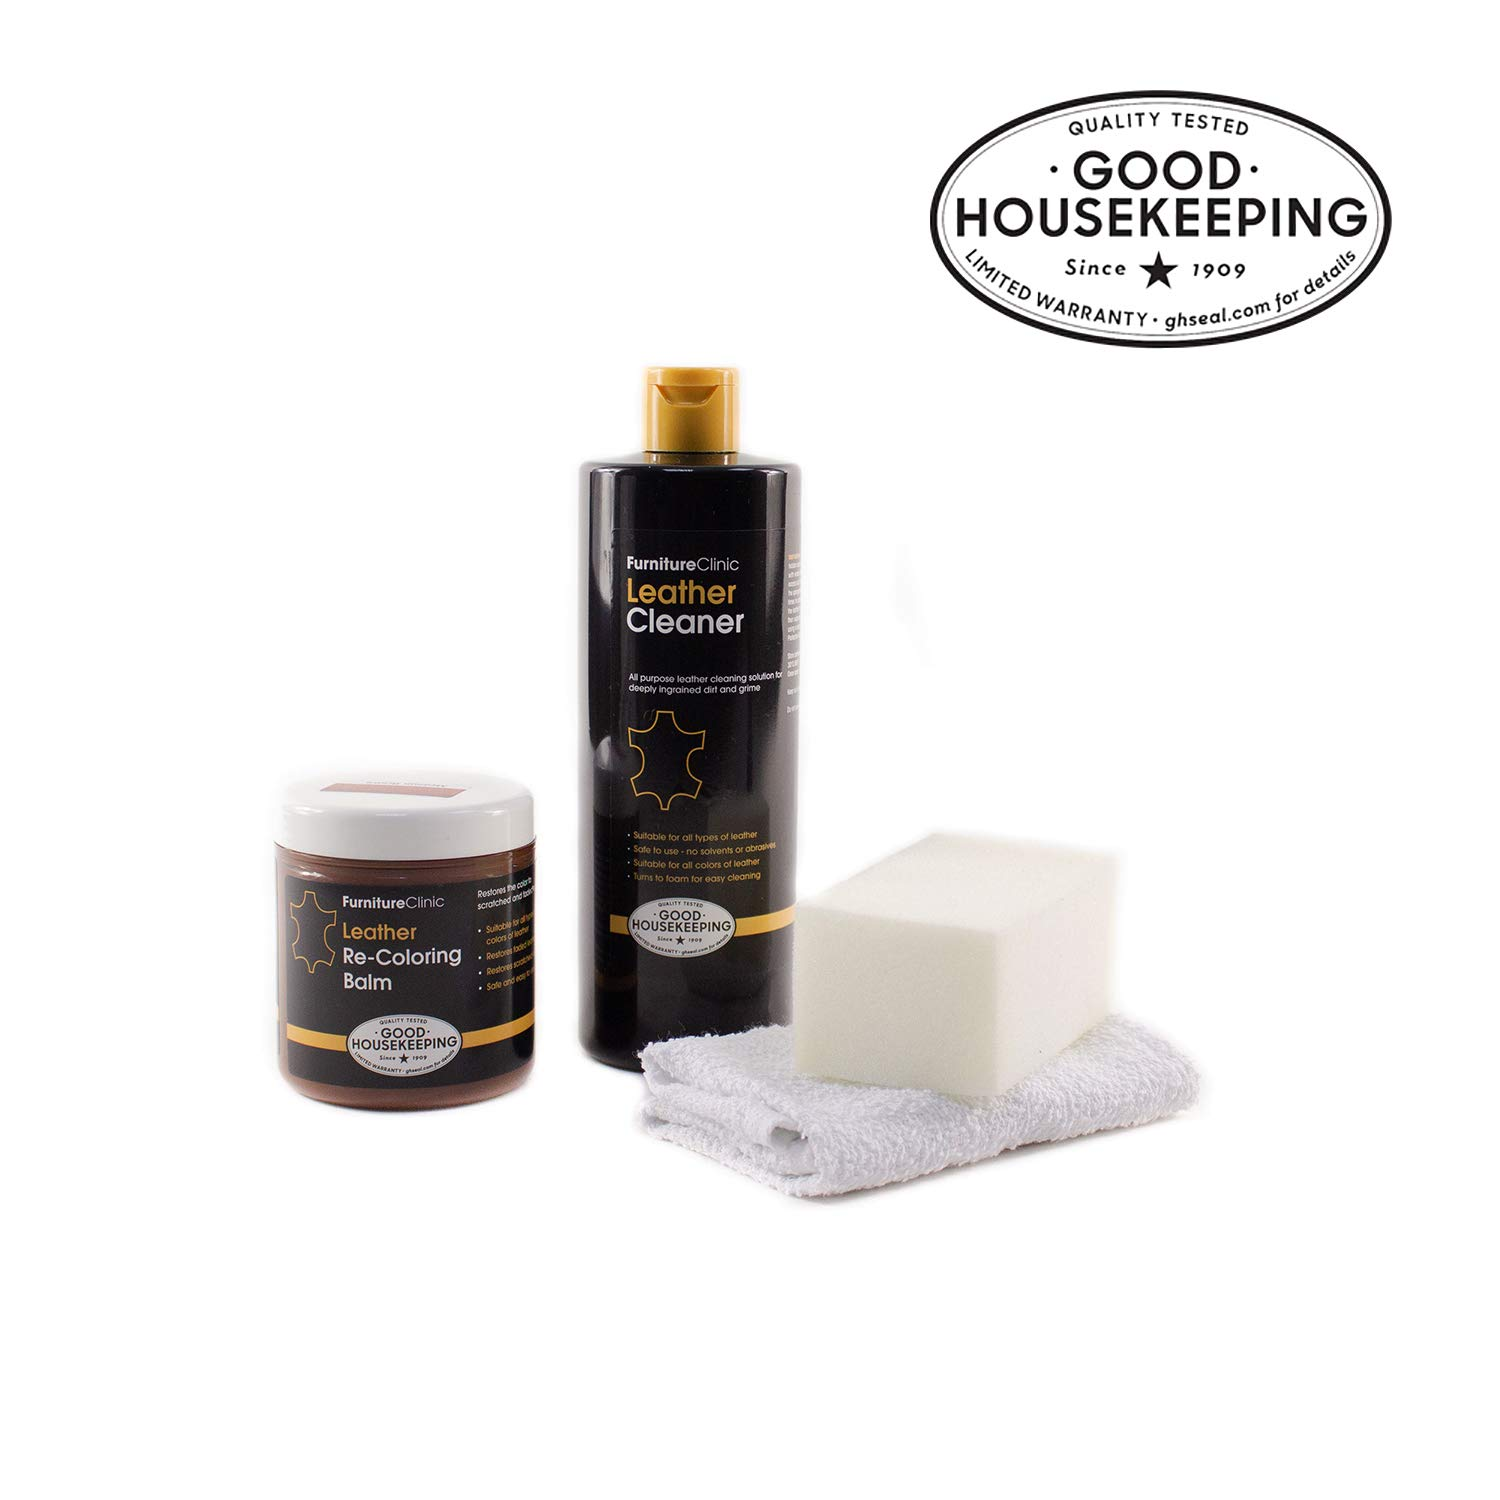 Furniture Clinic Leather Easy Restoration Kit | Set Includes Leather Recoloring Balm & Leather Cleaner, Sponge & Cloth | Restore & Repair Your Sofas, Car Seats & Other Leather Furniture (Dark Brown) by Furniture Clinic